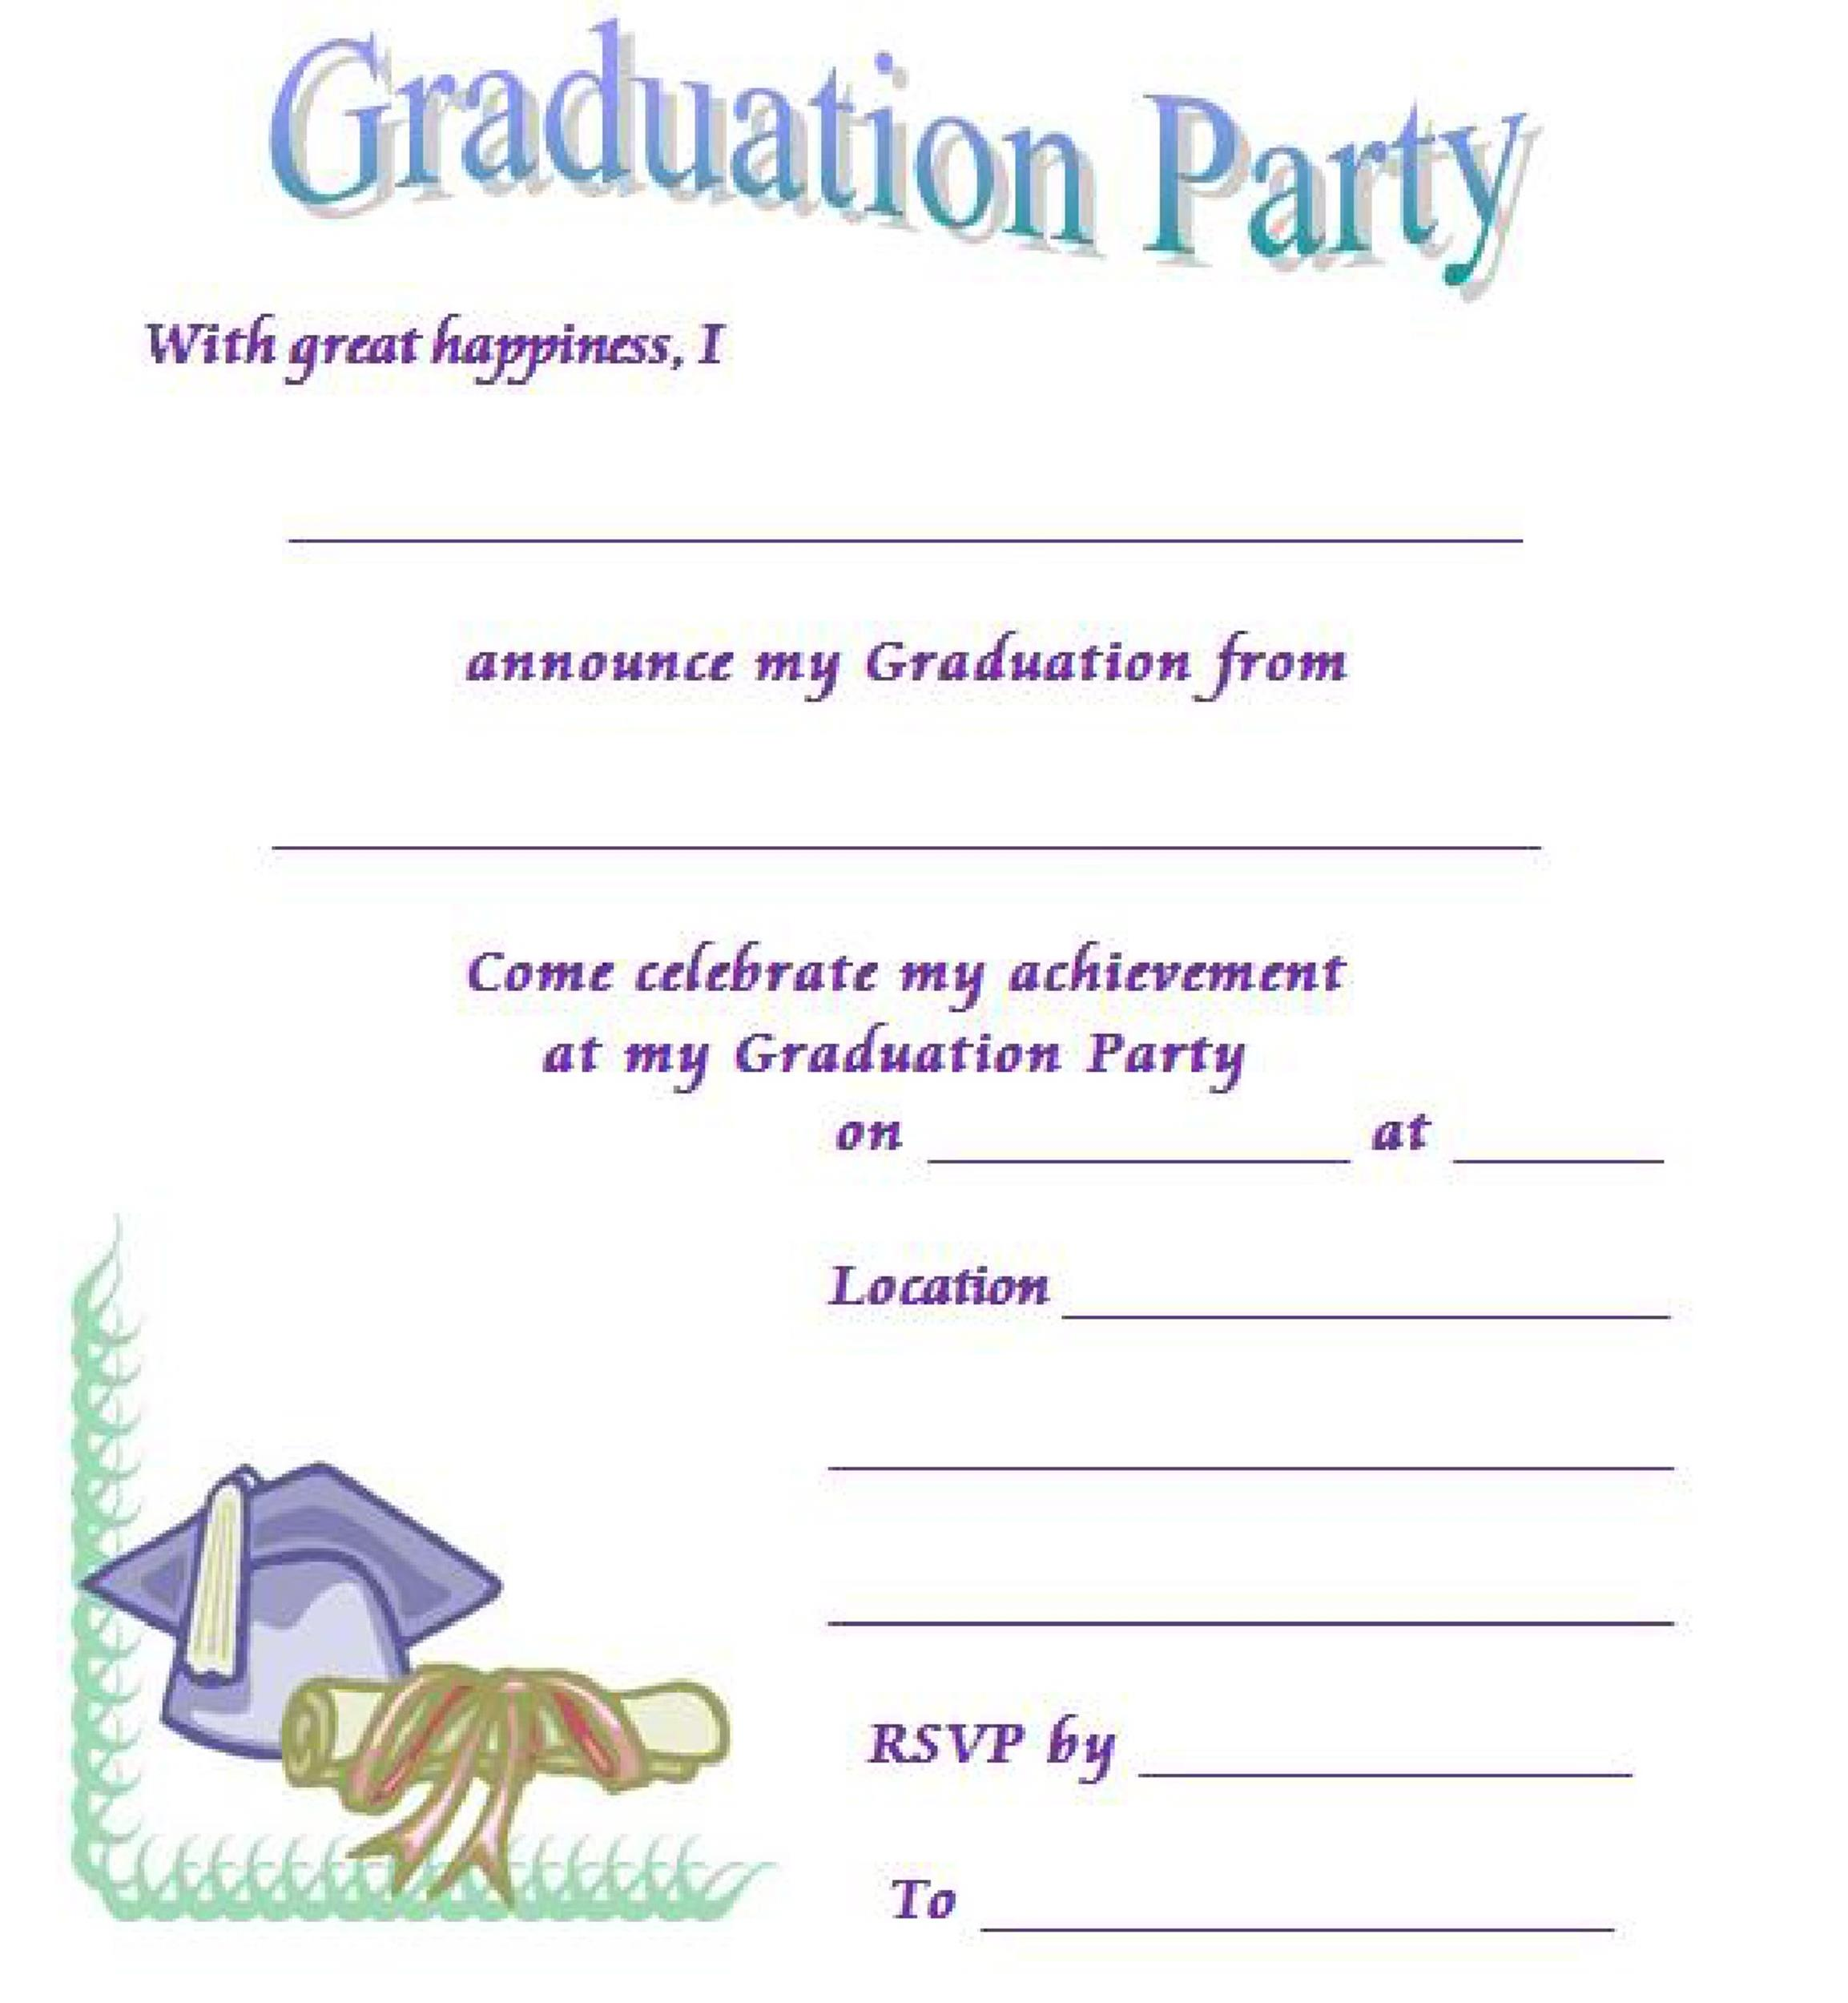 free graduation invitation templates 37 printable graduation invitation templates 37